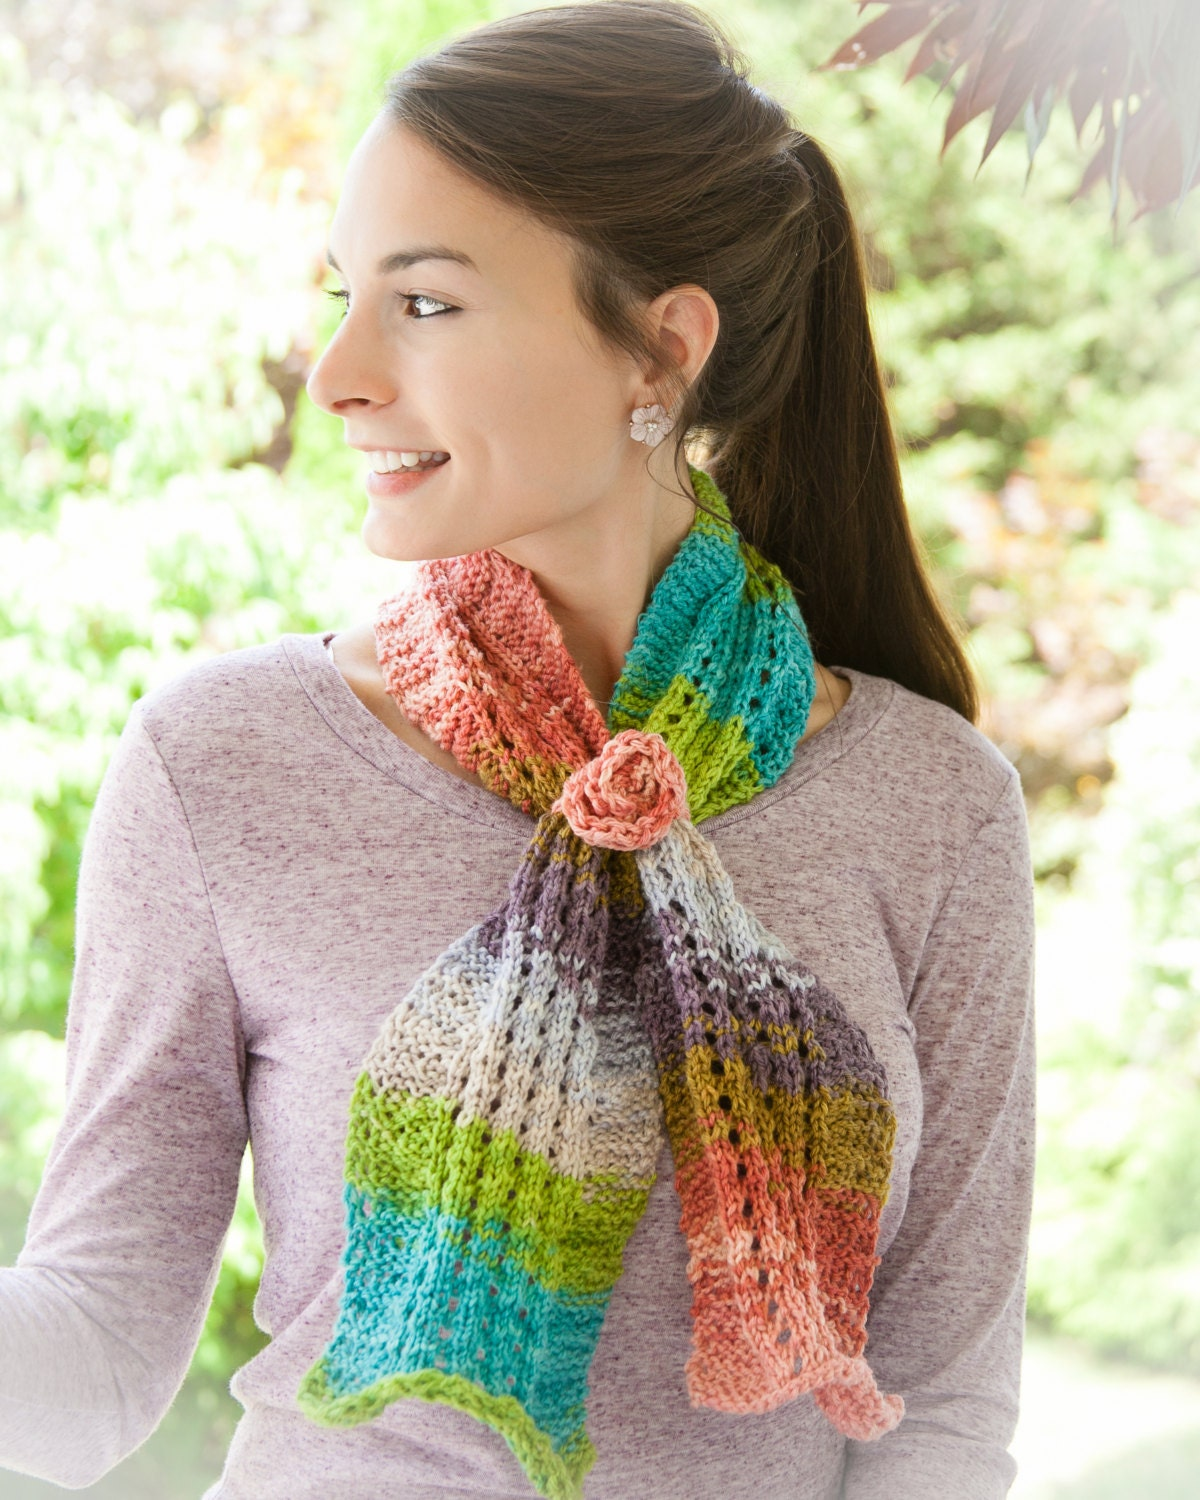 Loom Knit Scarf PATTERN. Painted Ripples Scarf PATTERN with